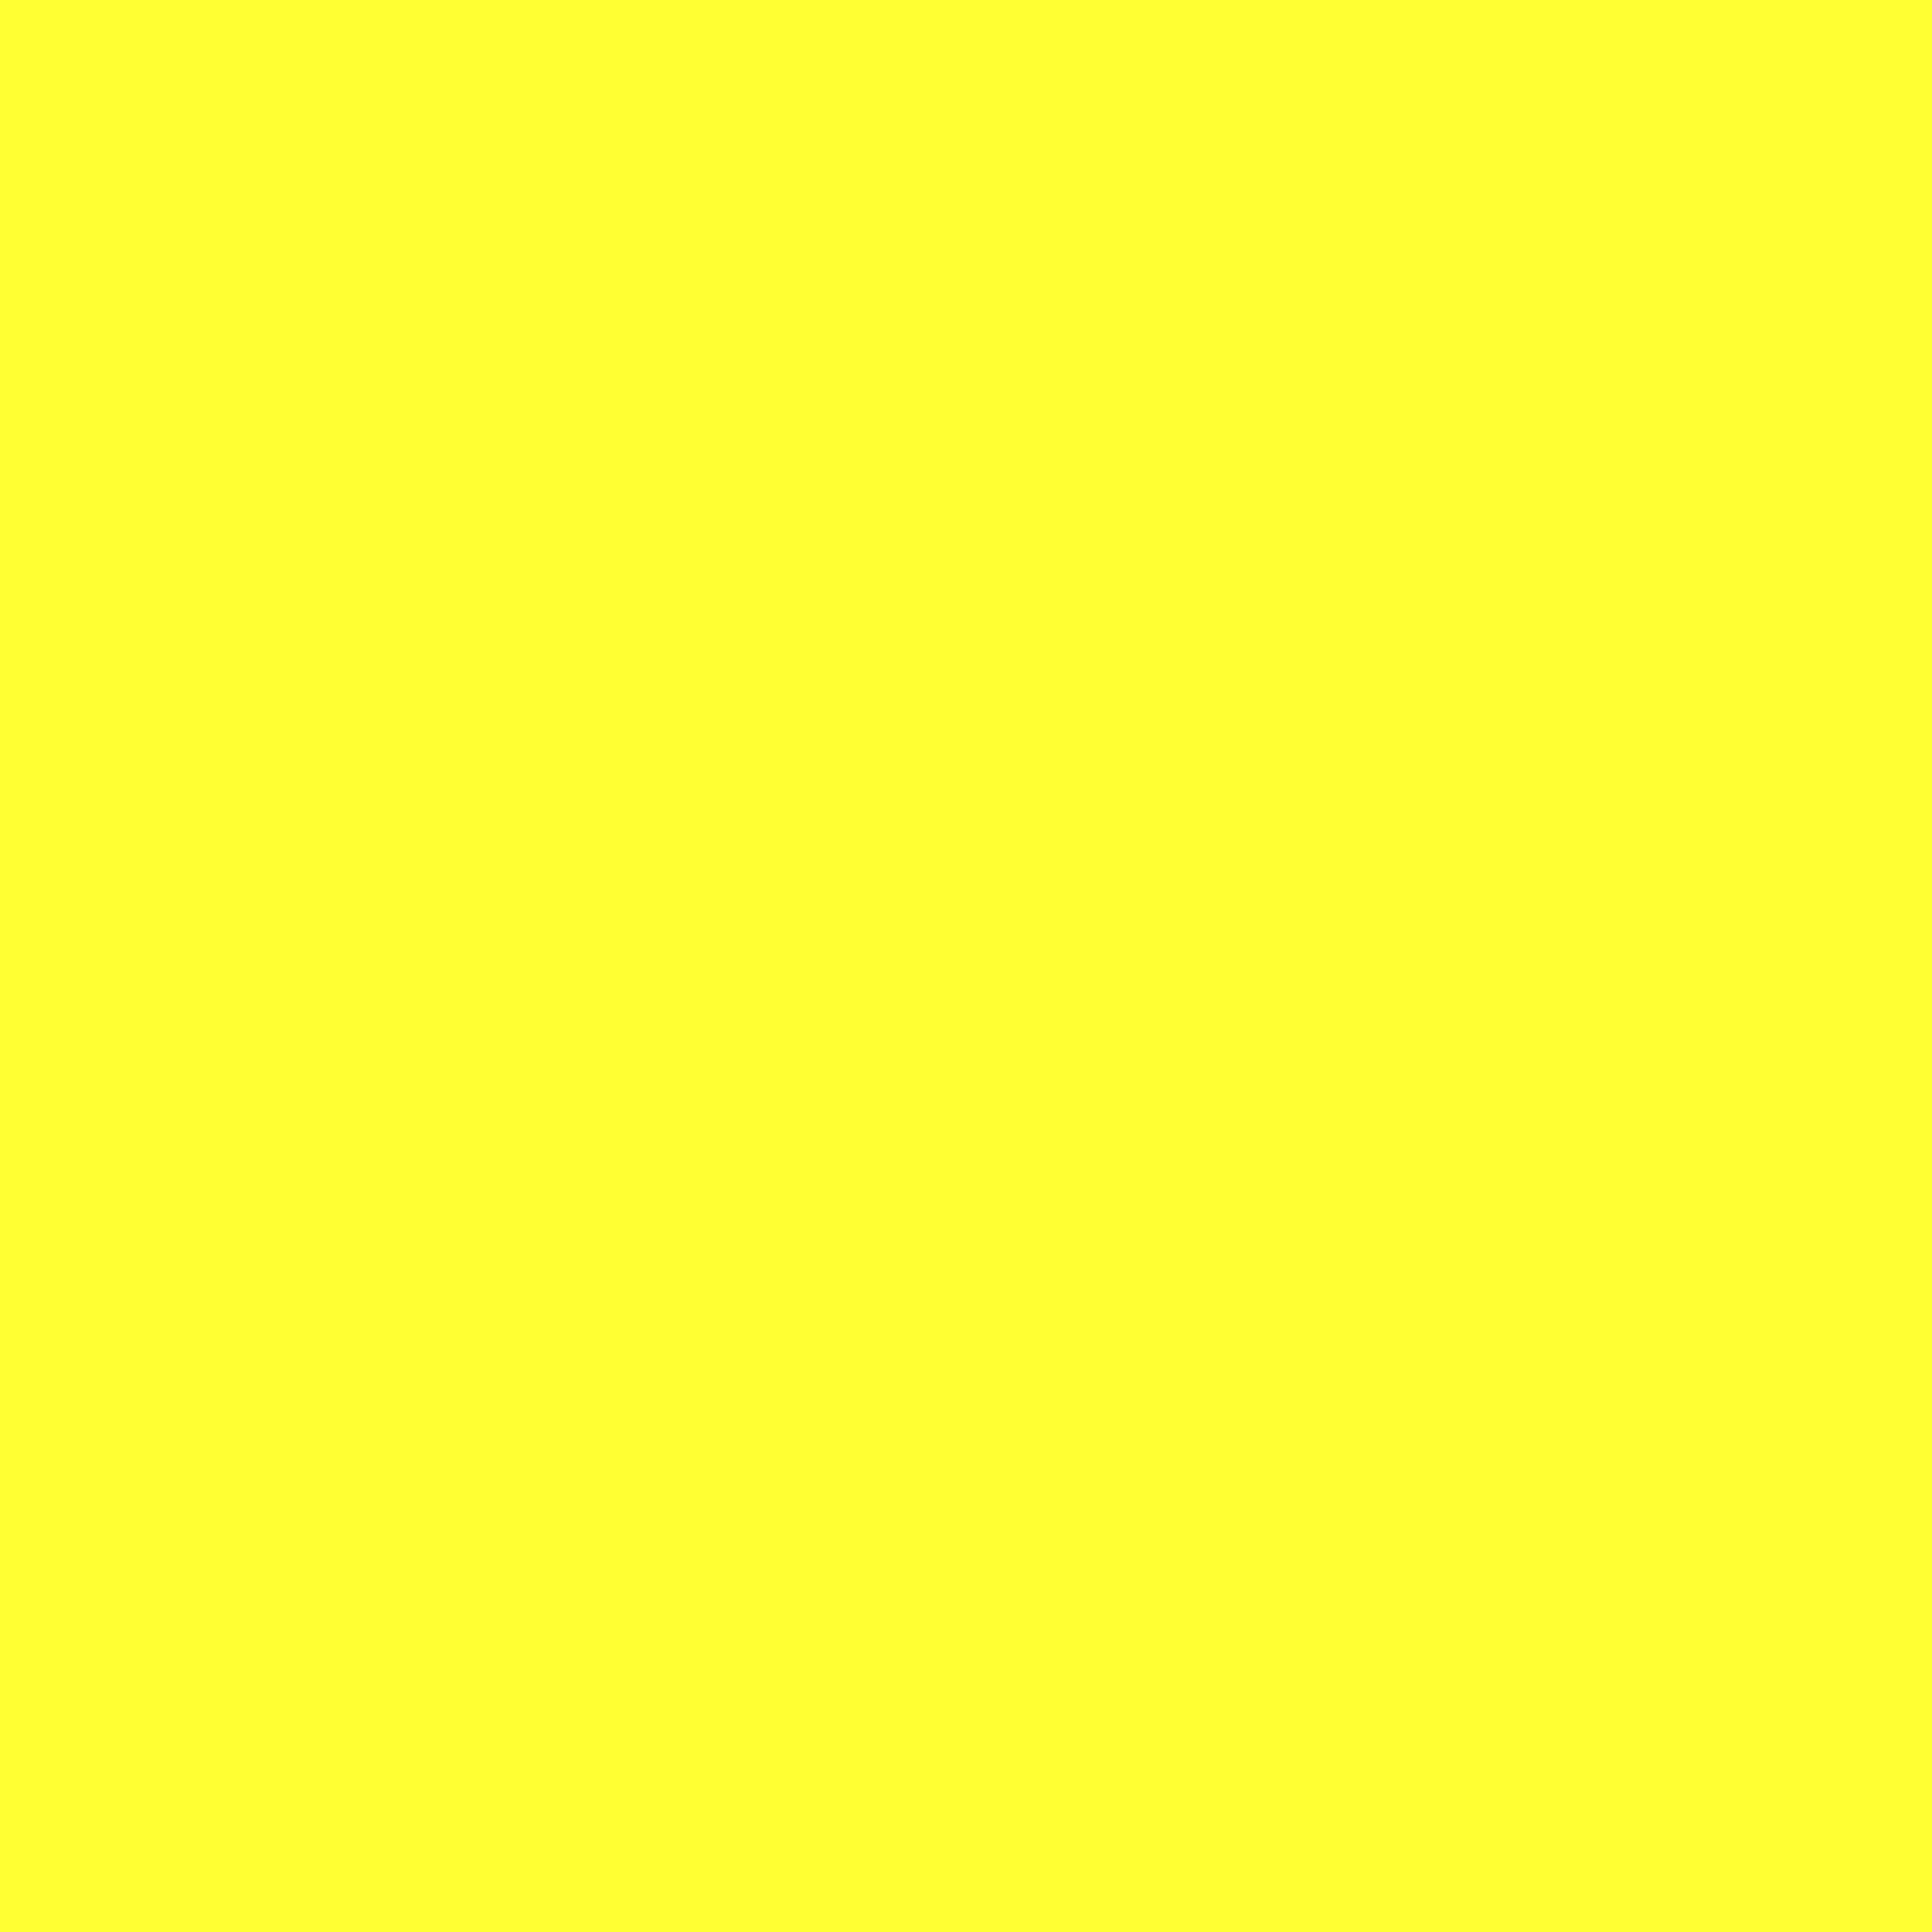 3600x3600 Electric Yellow Solid Color Background